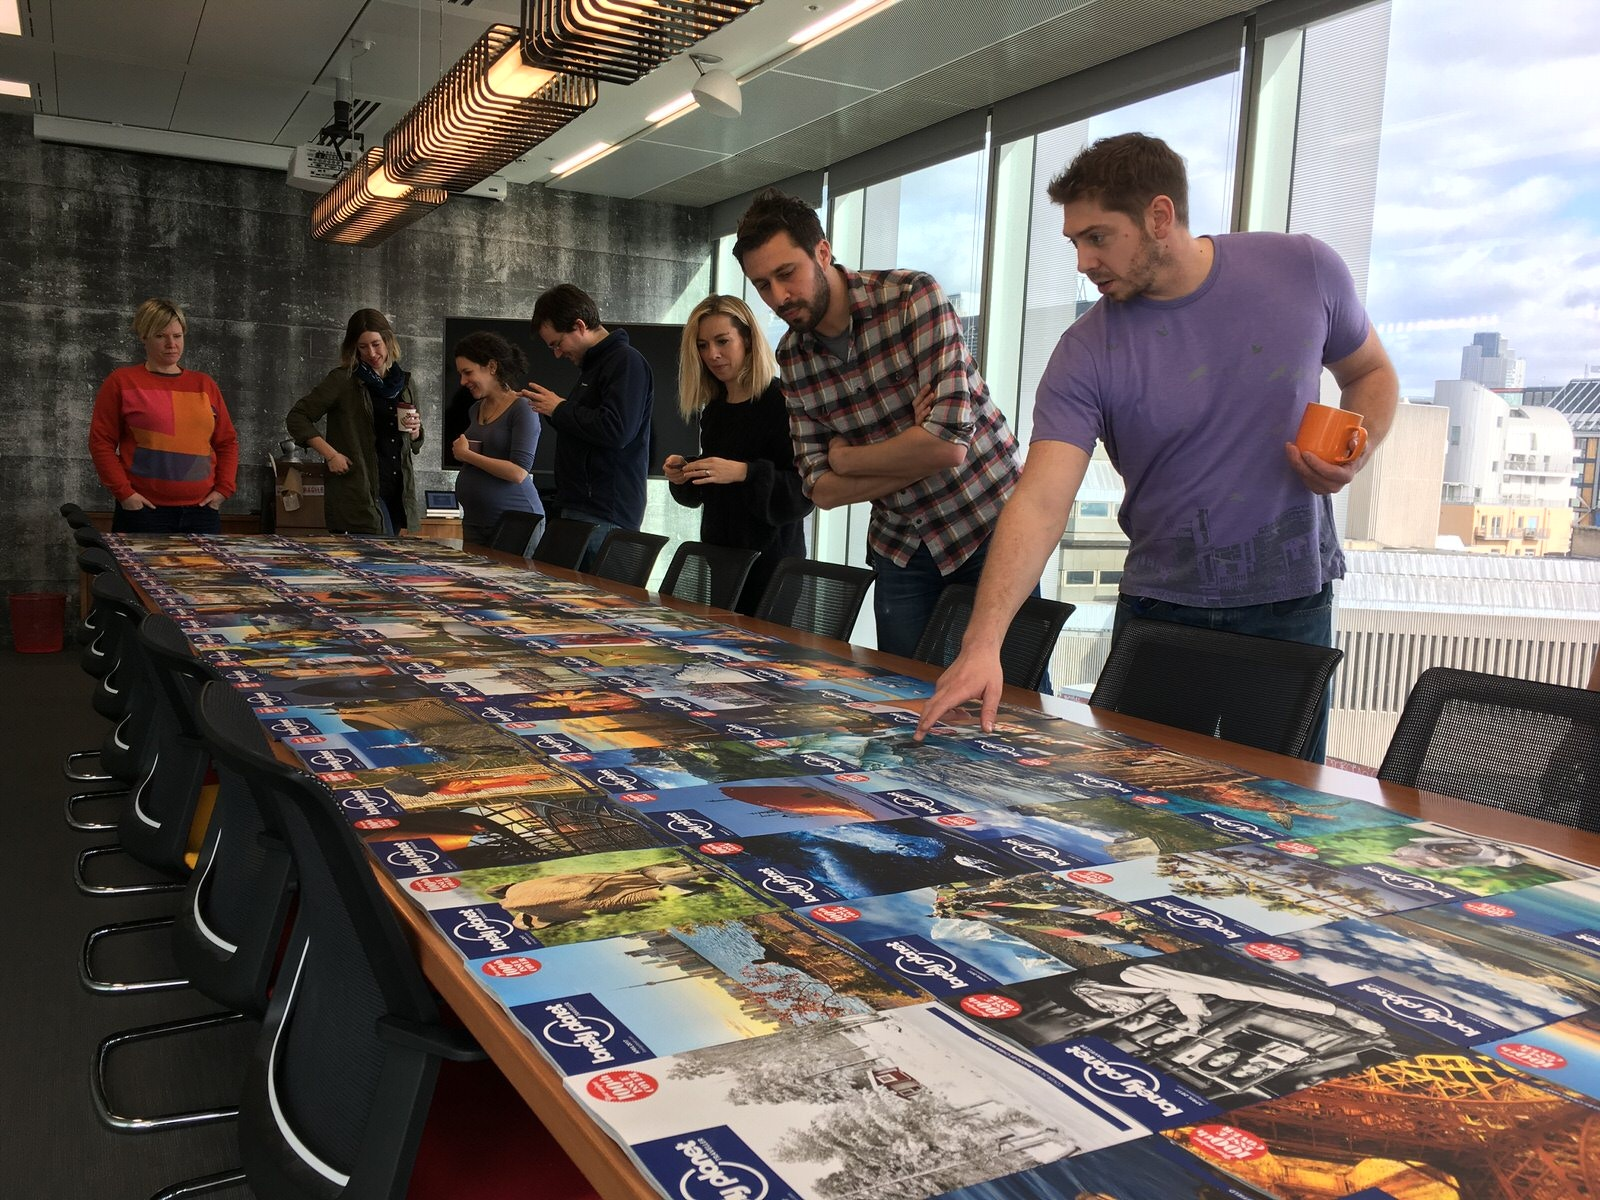 The UK magazine team view the 100th issue cover competition winners